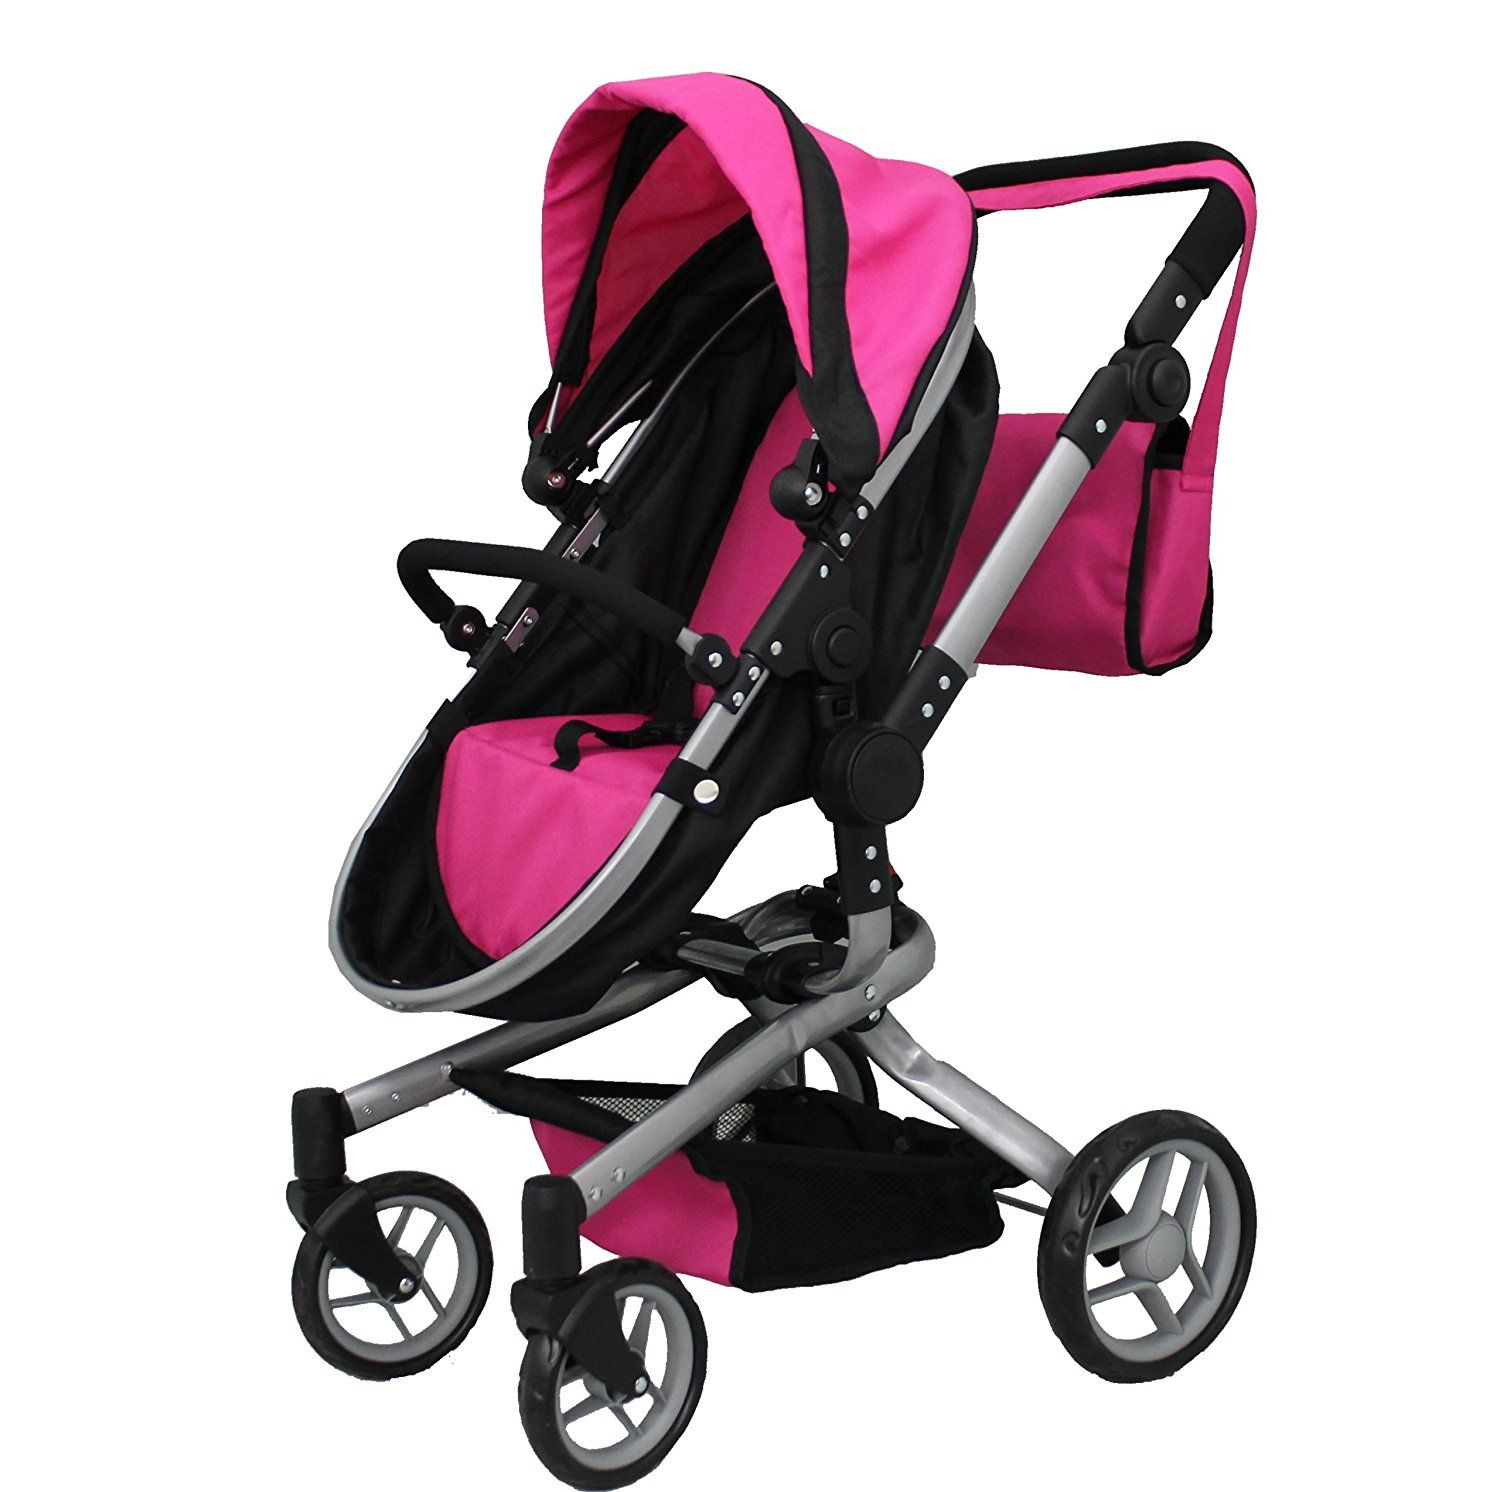 Mommy & me 2 in 1 Deluxe doll stroller EXTRA